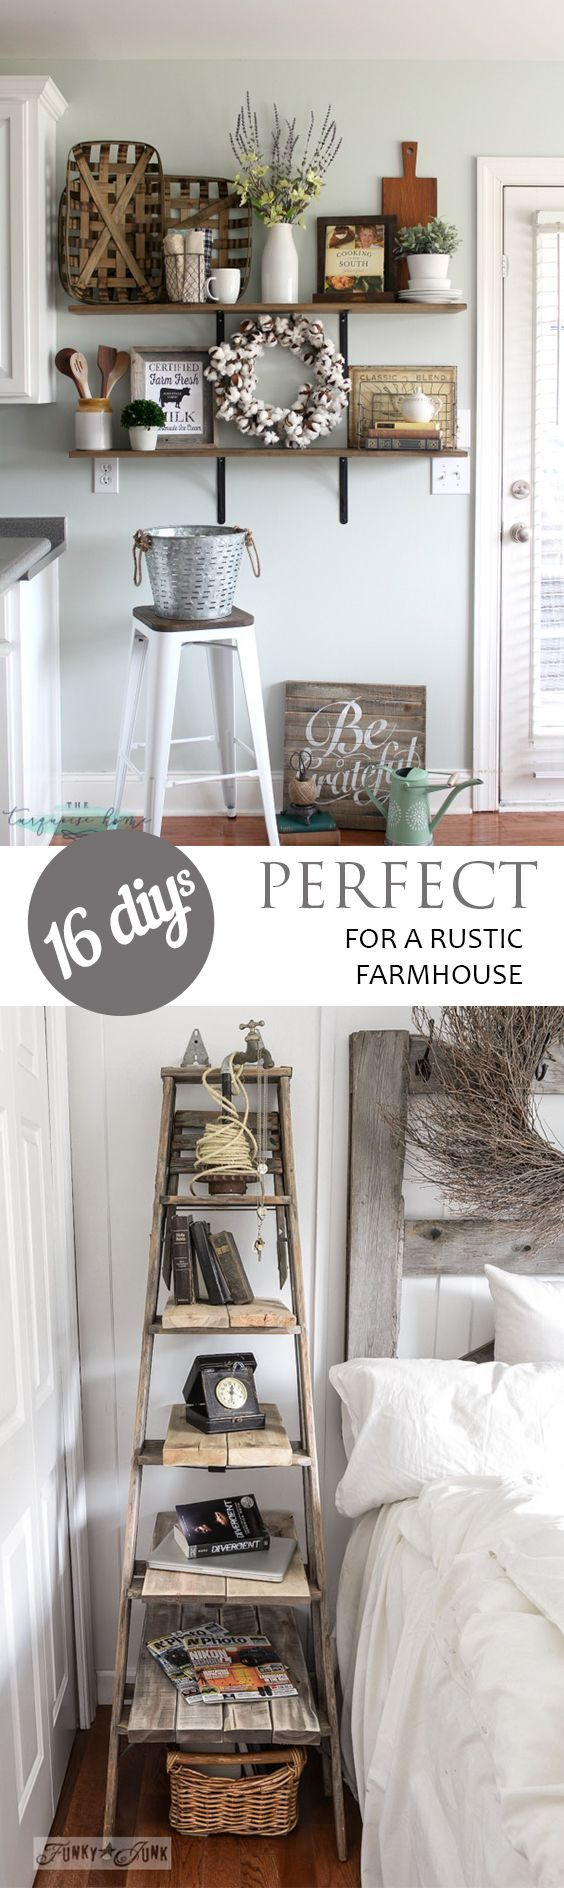 16-diys-perfect-for-a-rustic-farmhouse